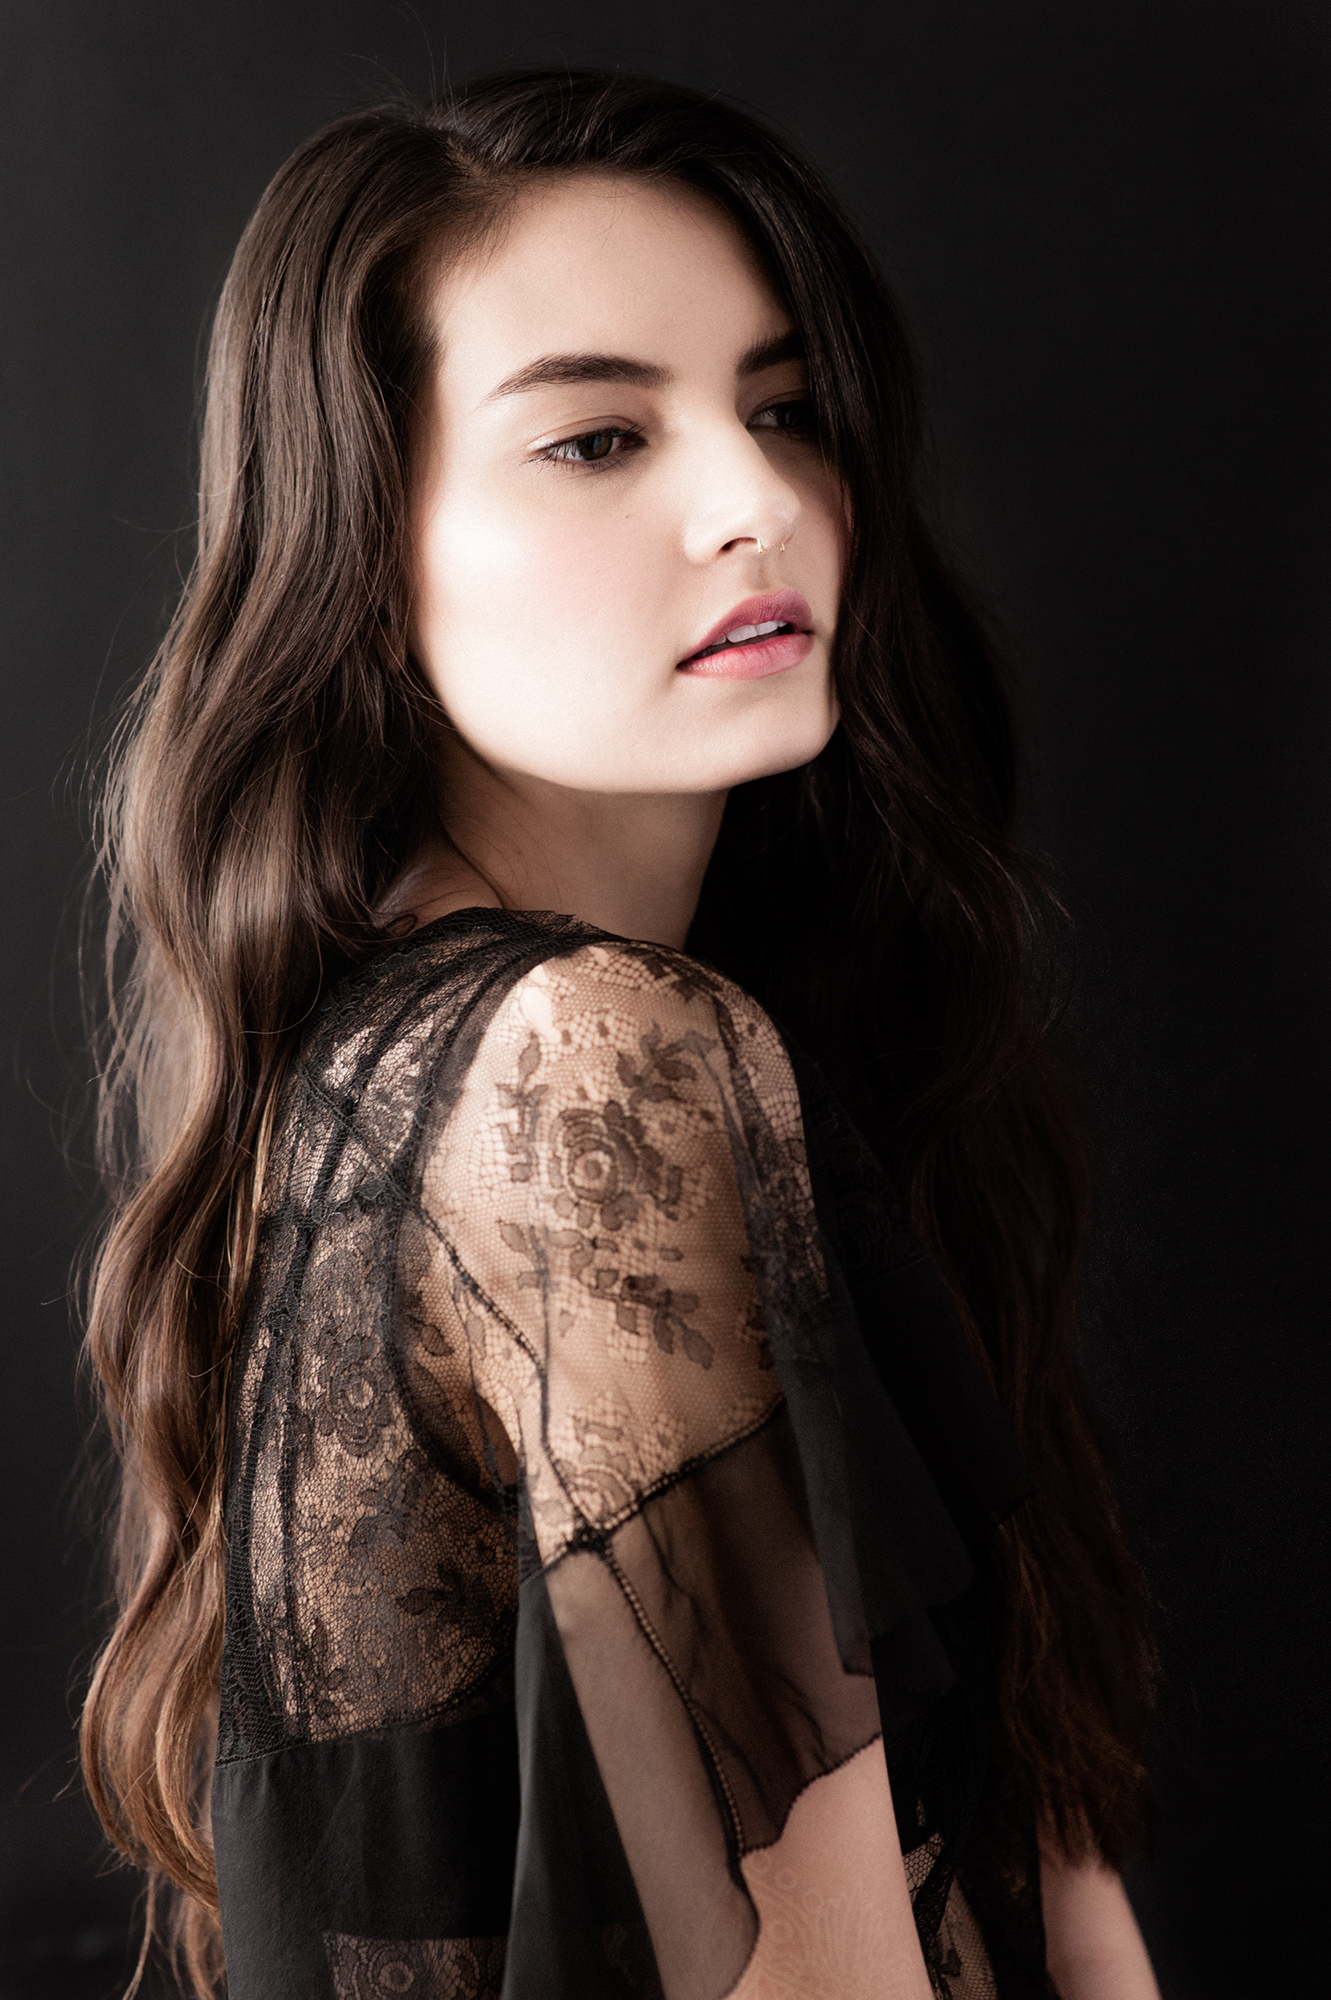 Sydney is wearing a Vintage 1930s Black Lace Dress and Botanica Workshop Aya Longline Bralette.